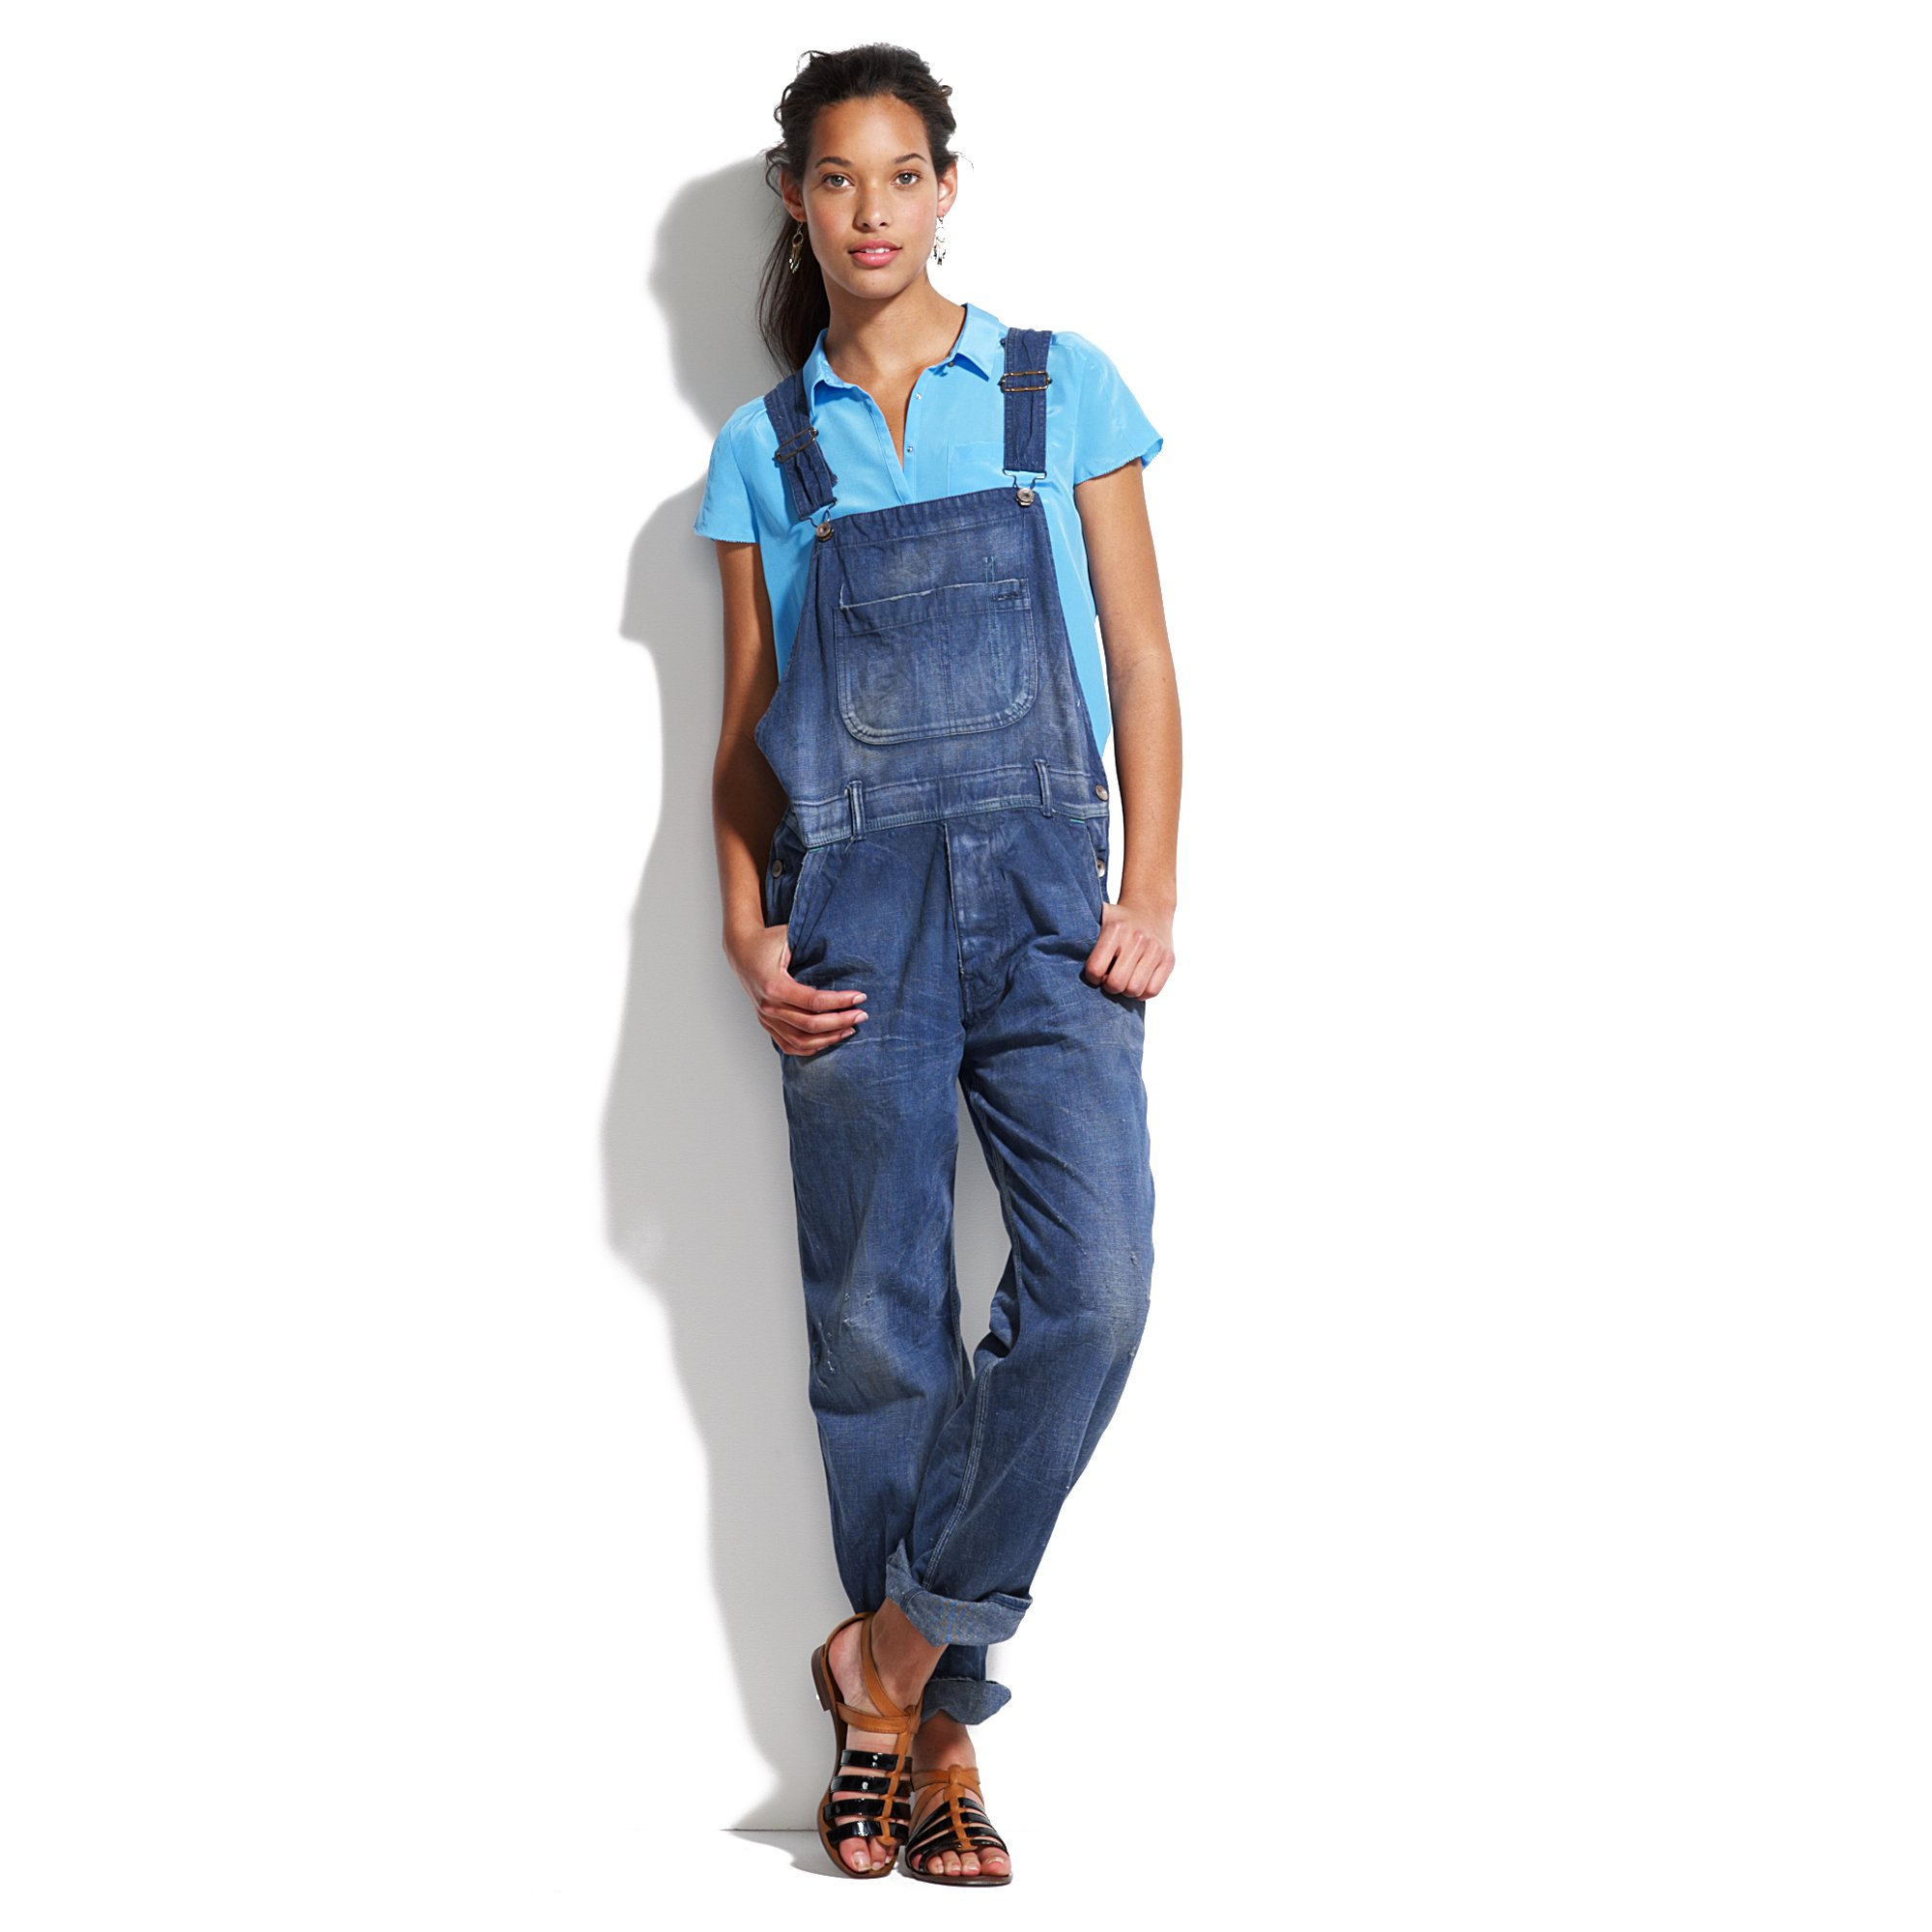 1bc4d7d80a53 Womens Blue Jean Overalls - Best Picture Of Blue Imageve.Org